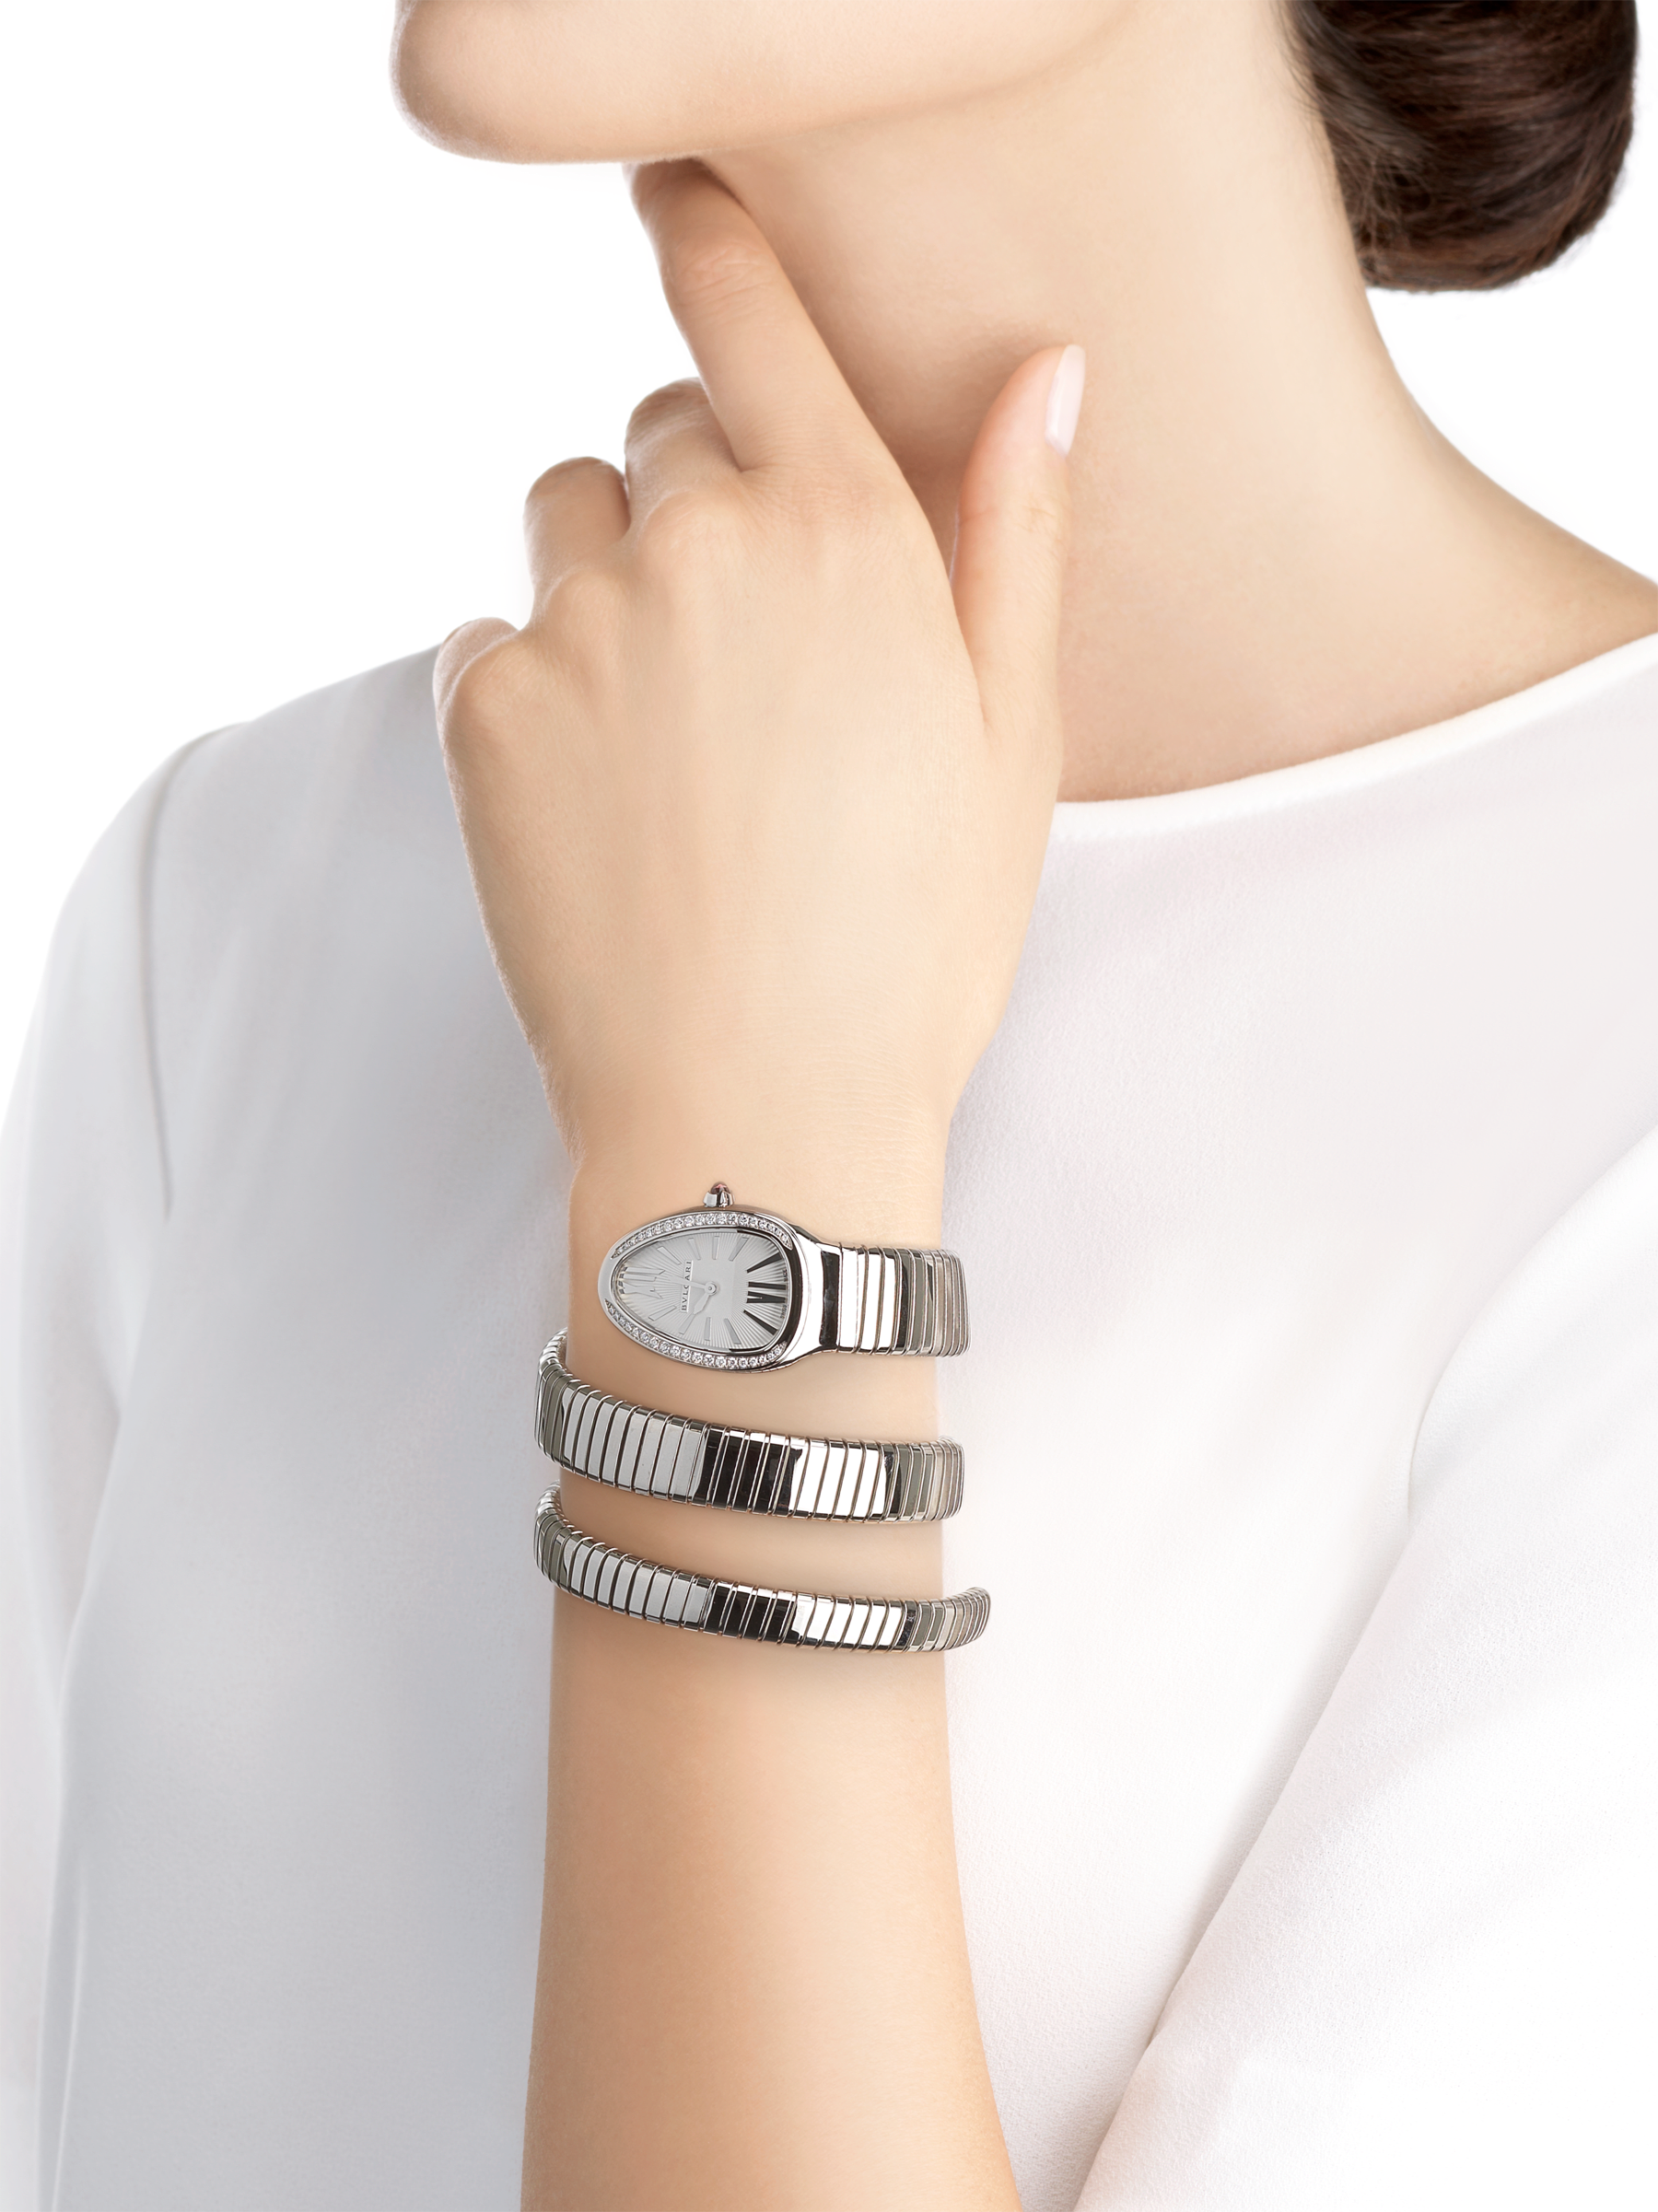 Serpenti Tubogas double spiral watch in stainless steel case and bracelet, bezel set with brilliant cut diamonds and silver opaline dial. 101910 image 4